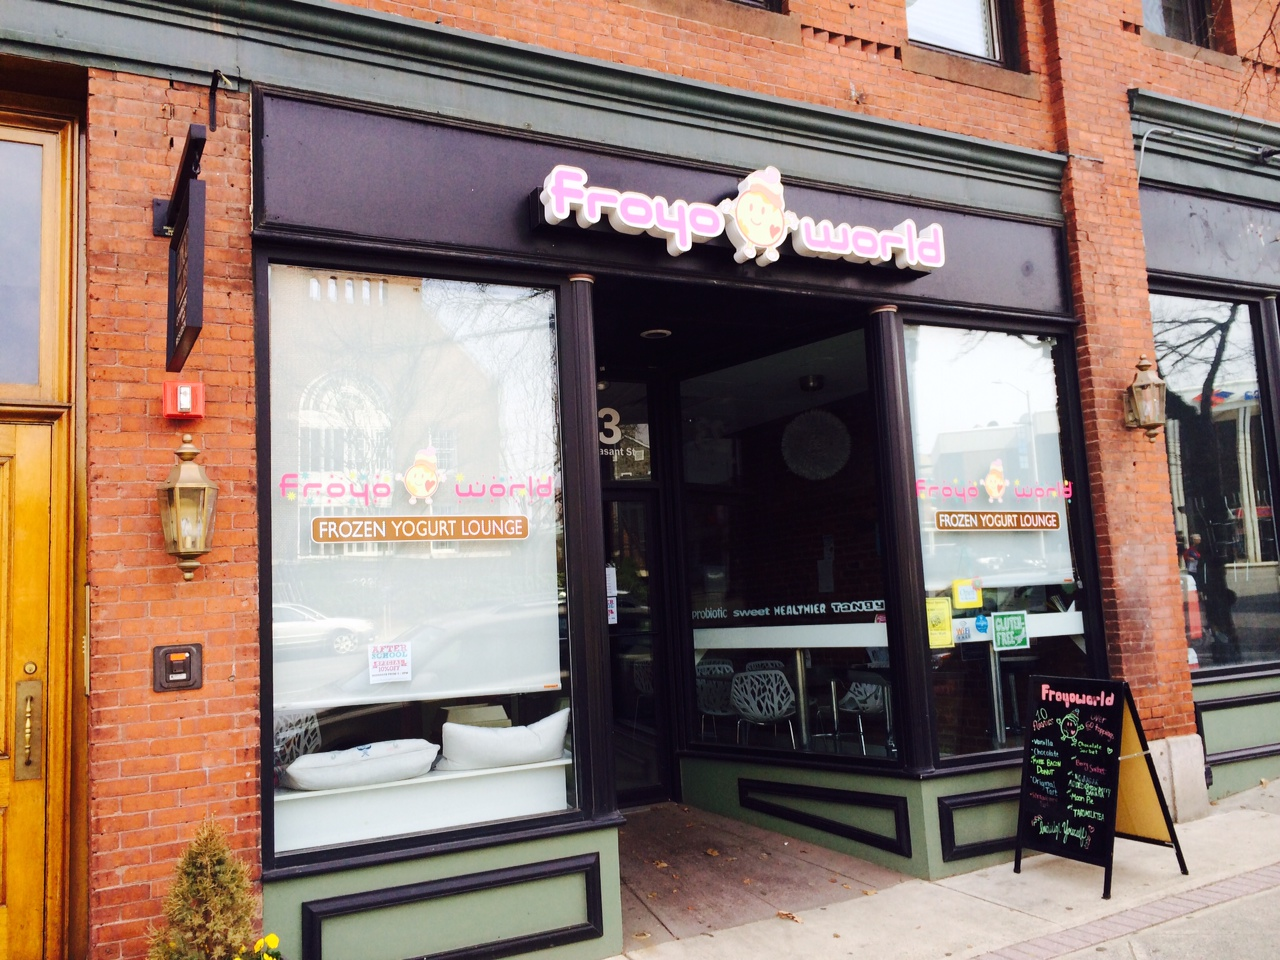 Commercial restaurant space in Amherst MA